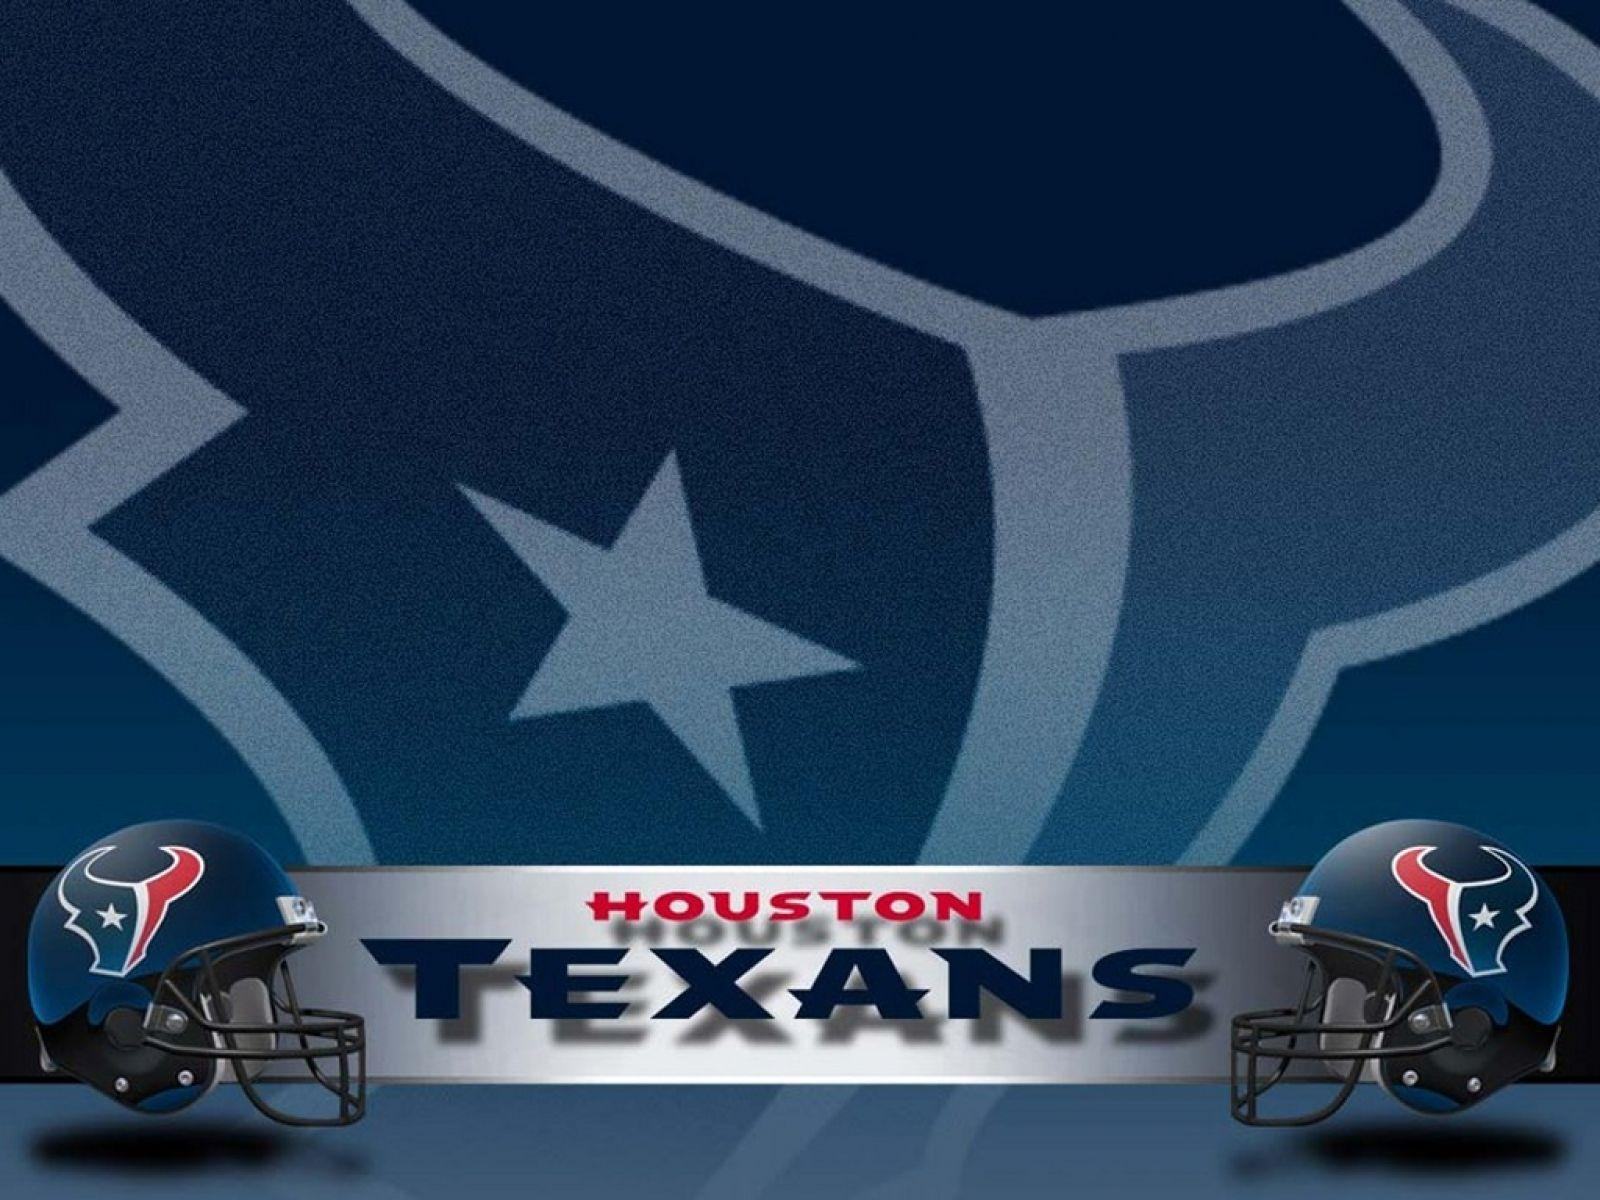 Houston Texans Wallpapers 2016